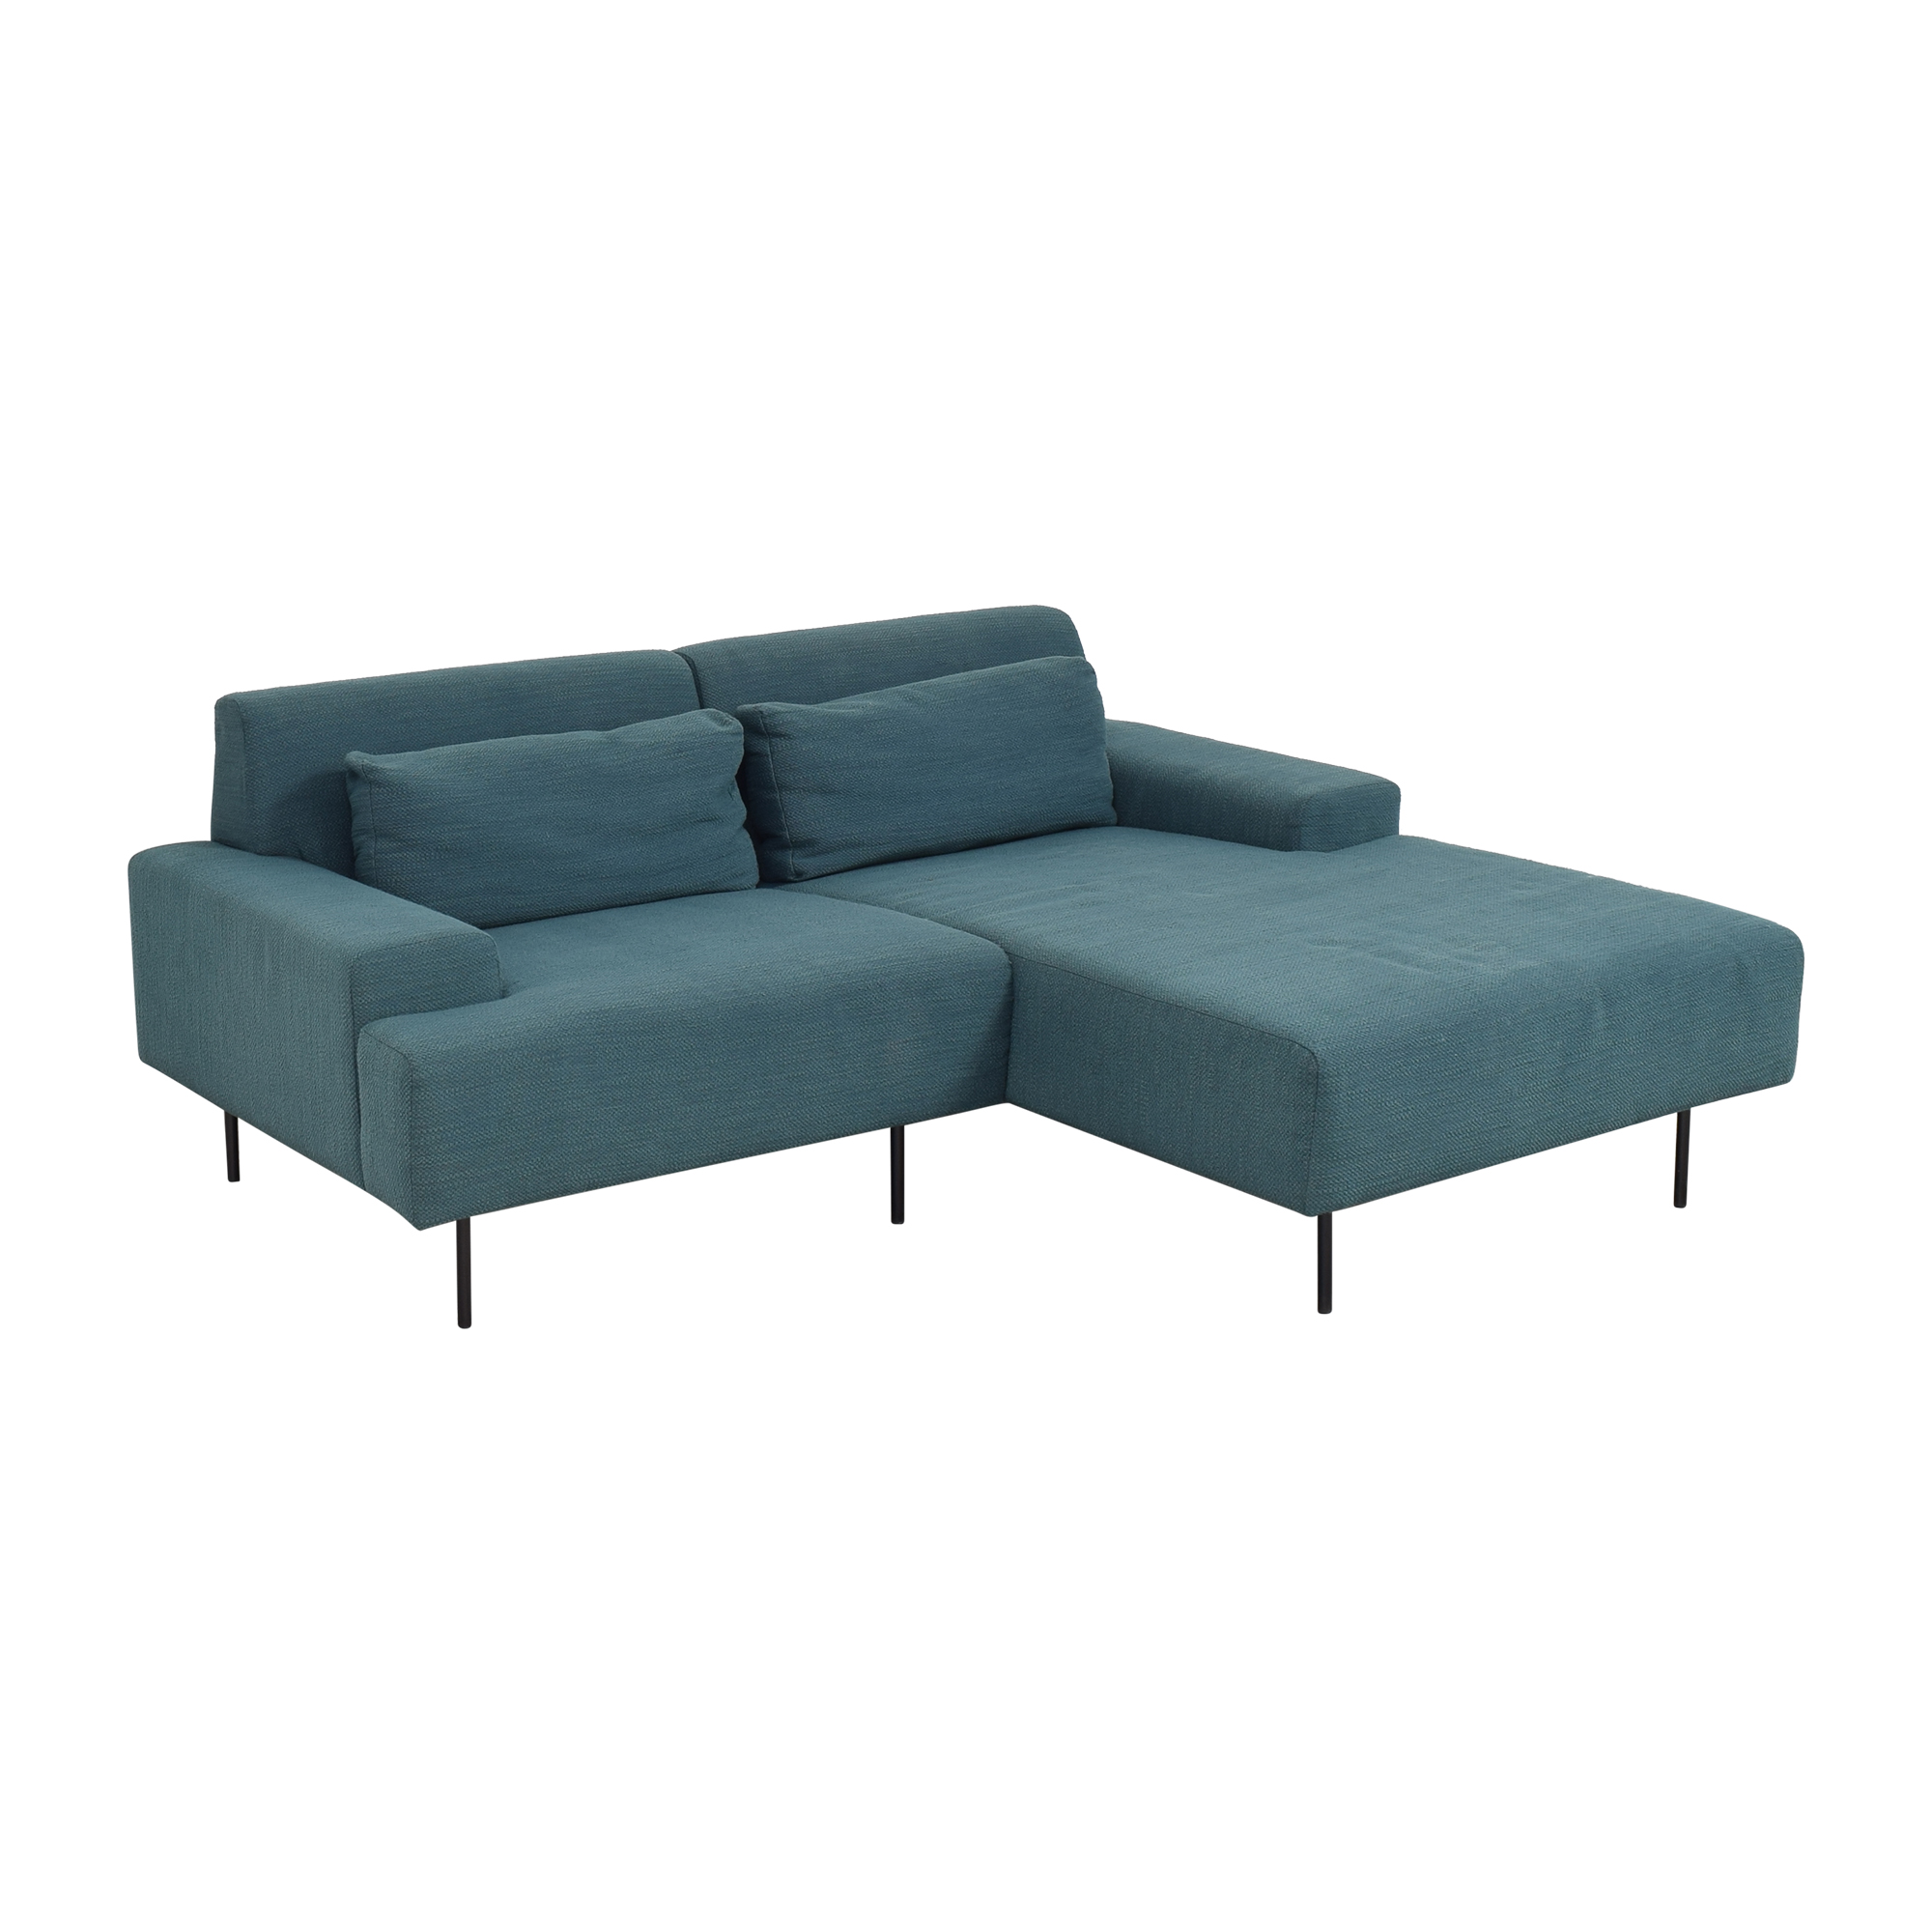 buy West Elm West Elm Beckham Two Piece Chaise Sectional Sofa online